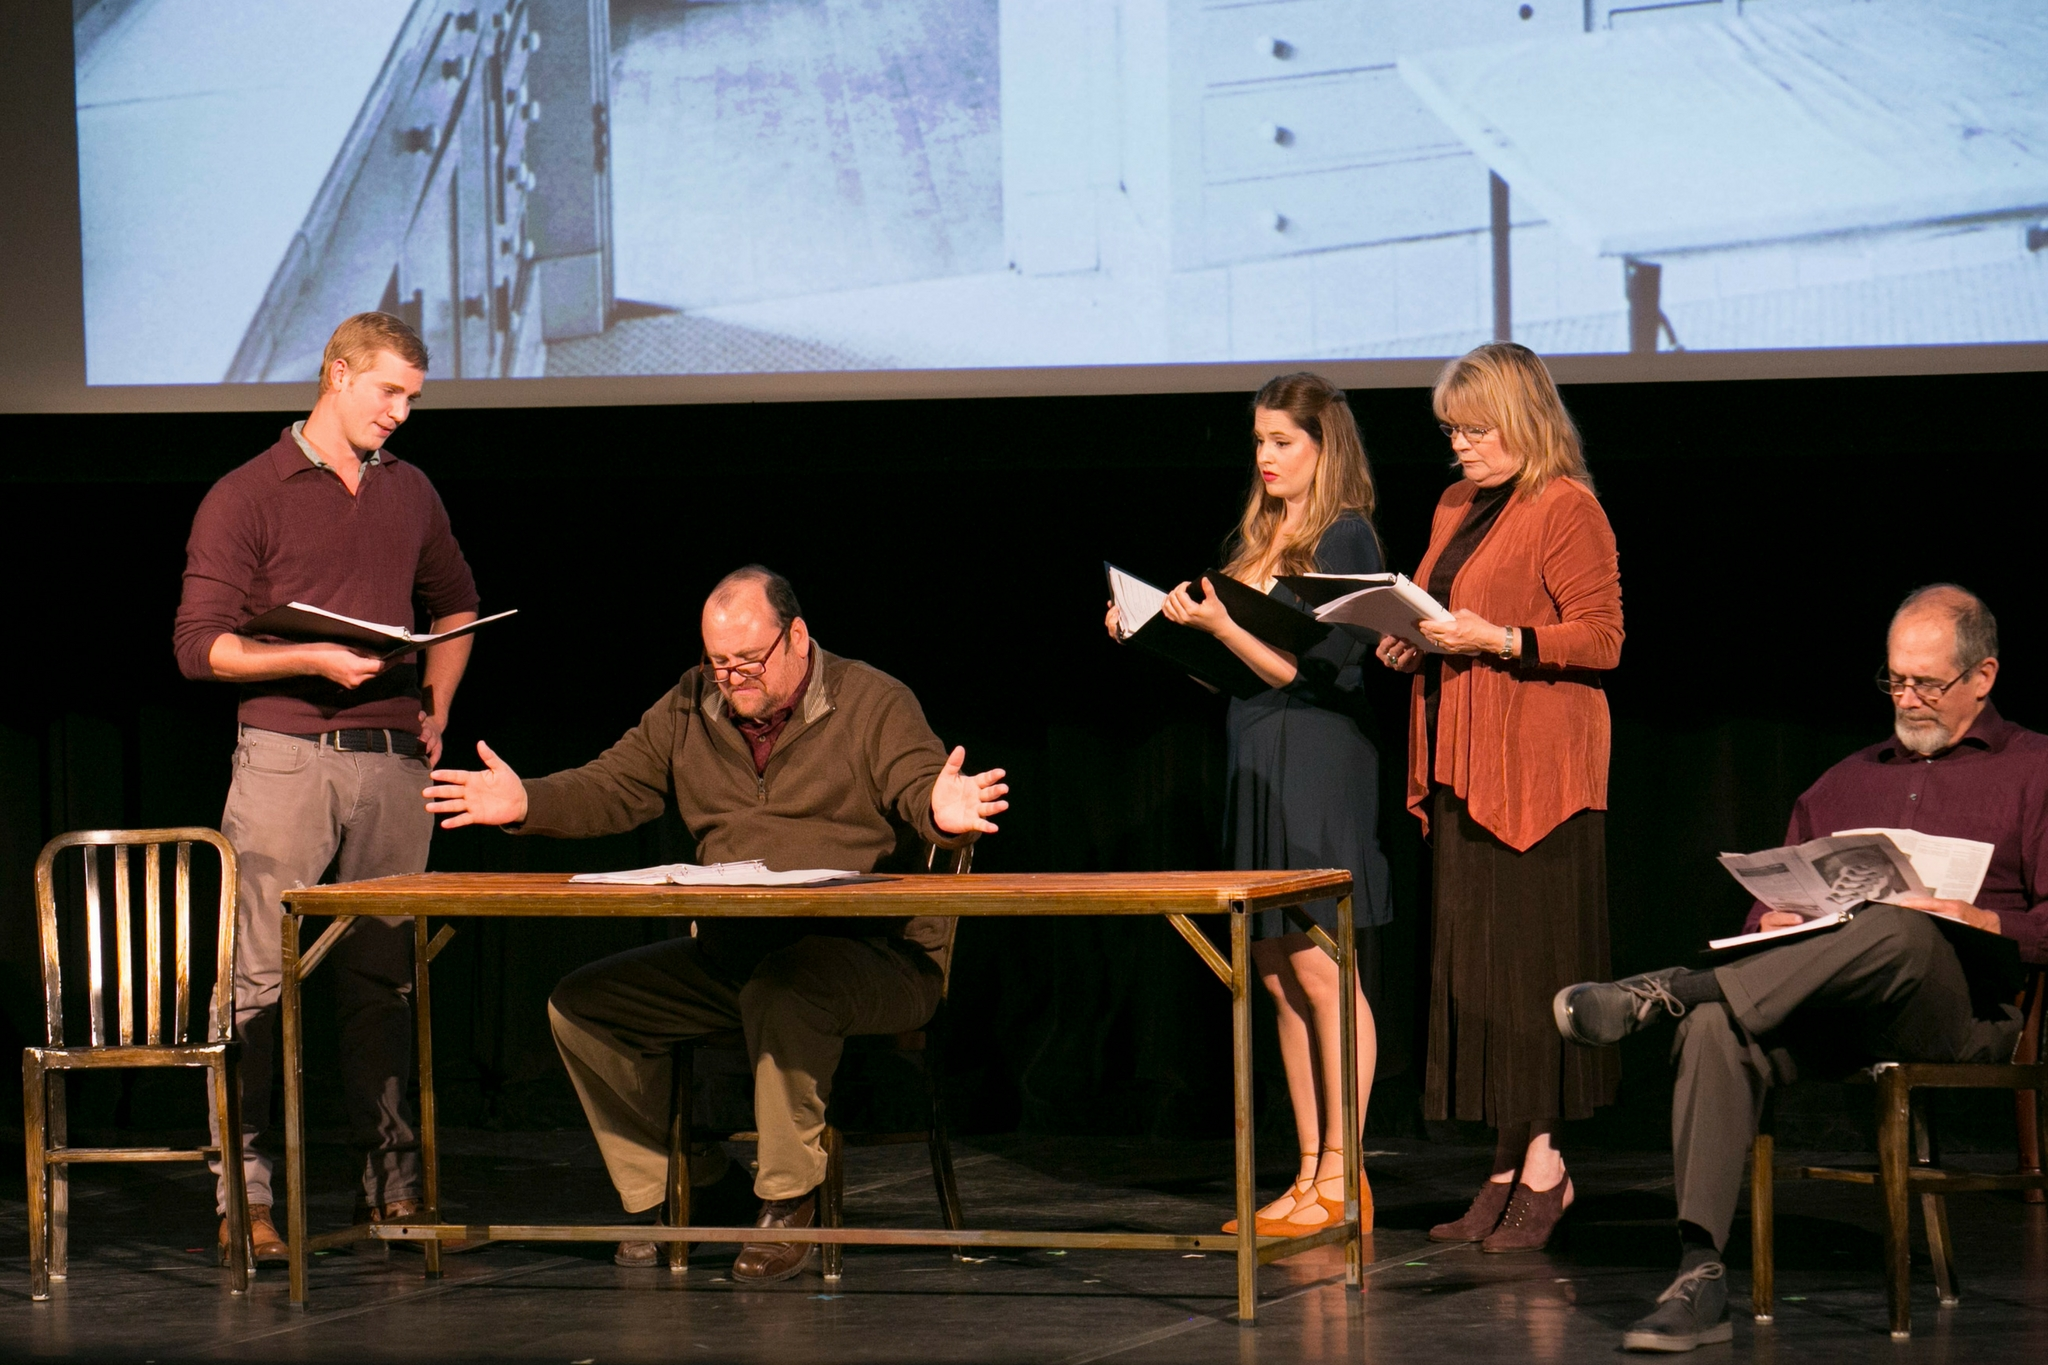 Nash Hightower (S.A. Man), Brandon Whitehead (Worker), Sarah Mass (Parlor Maid), Karen MacDonald (Cook), and Joel Colodner (Chauffeur)in The Chalk Cross, Theatre in the Rough, 2017-Photo by Evgenia Eliseeva